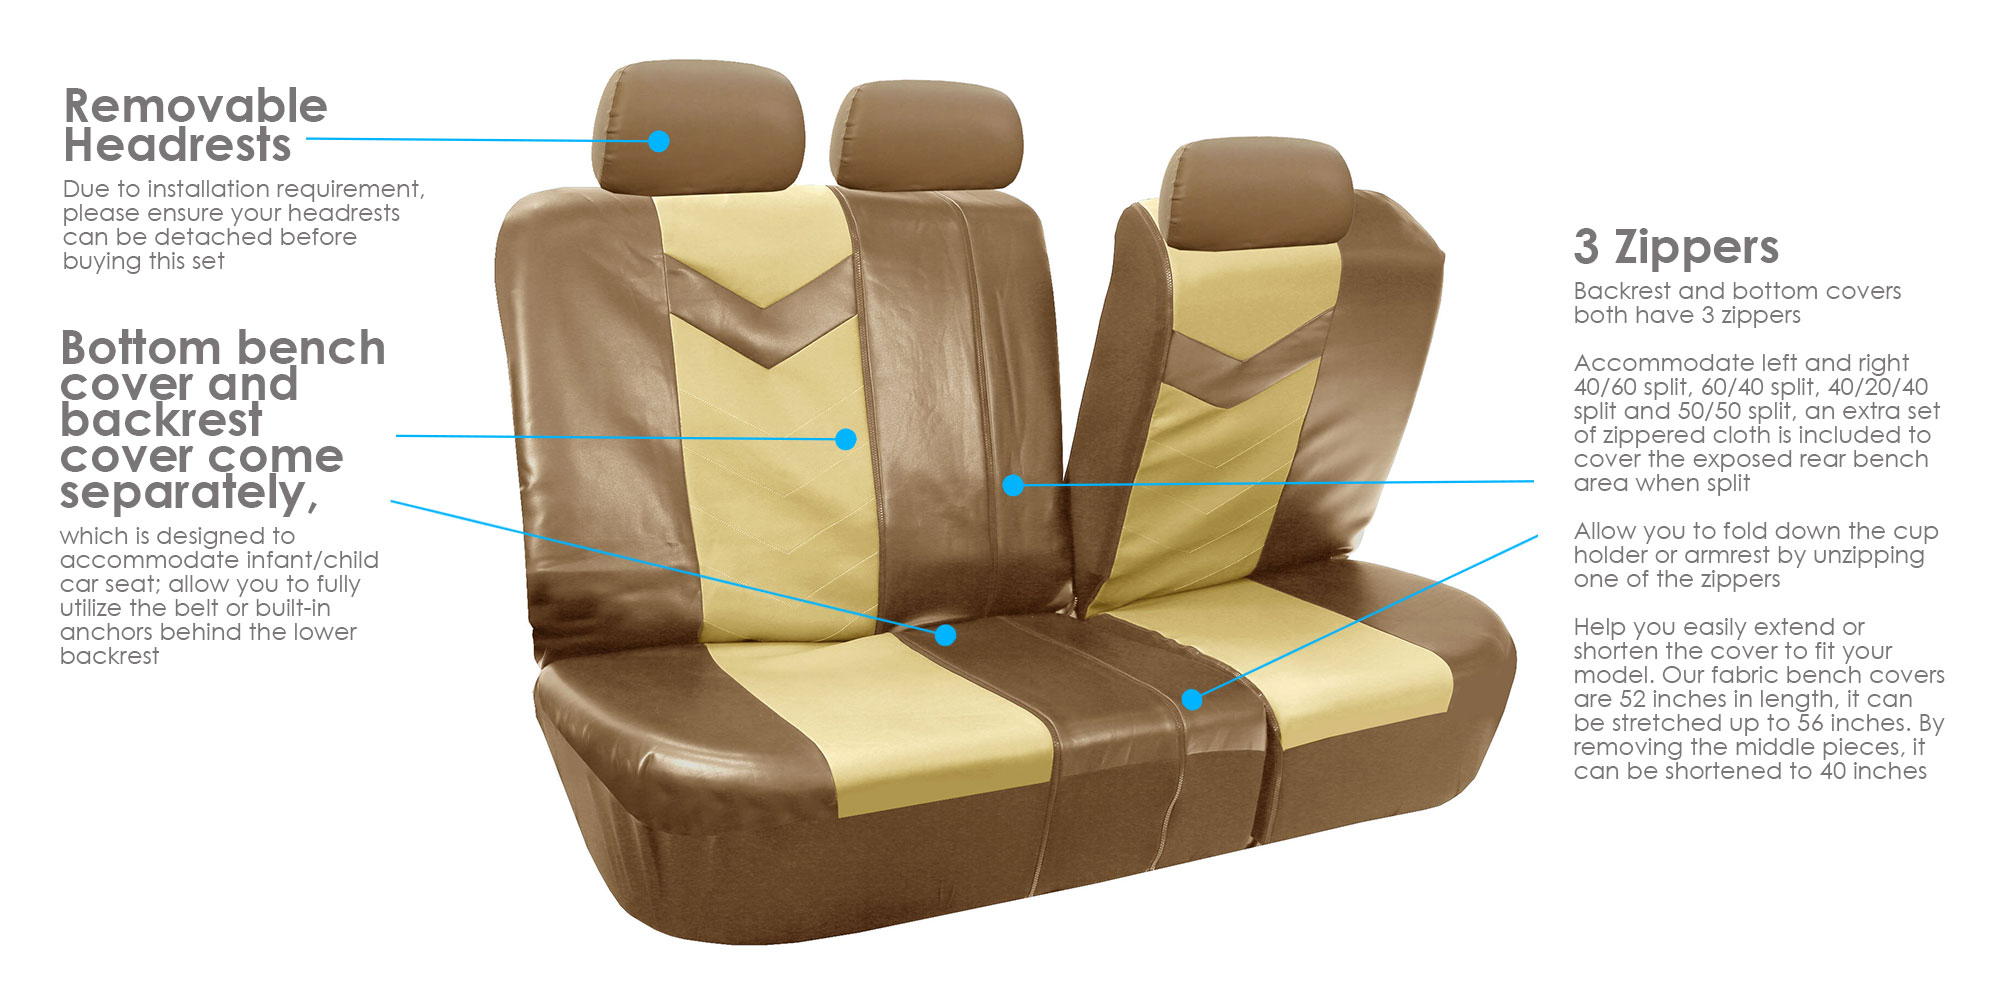 Miraculous Fh Group Synthetic Leather Auto Accessory Full Set With Steering Wheel Cover And Seatbelt Pads Side Airbag Compatible With Split Bench Function Andrewgaddart Wooden Chair Designs For Living Room Andrewgaddartcom